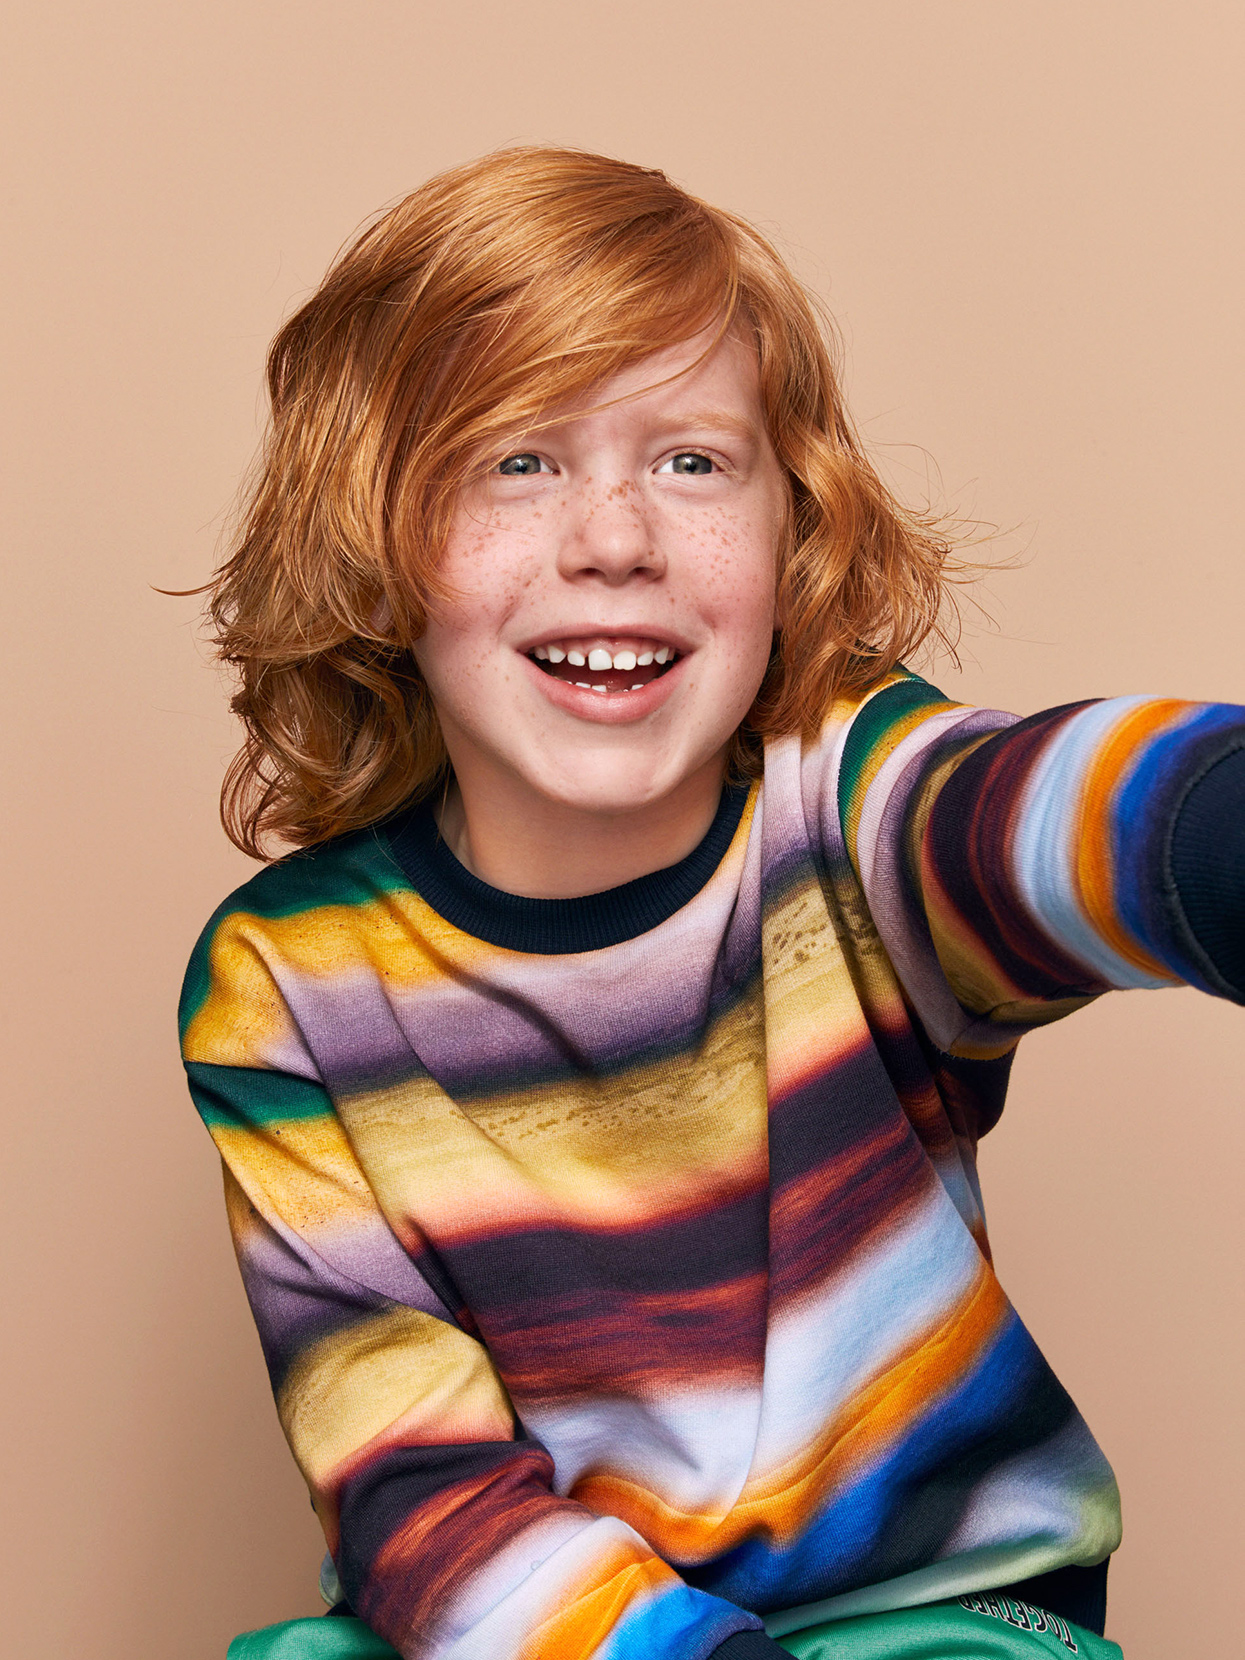 school-aged boy with shaggy-wavy red hair